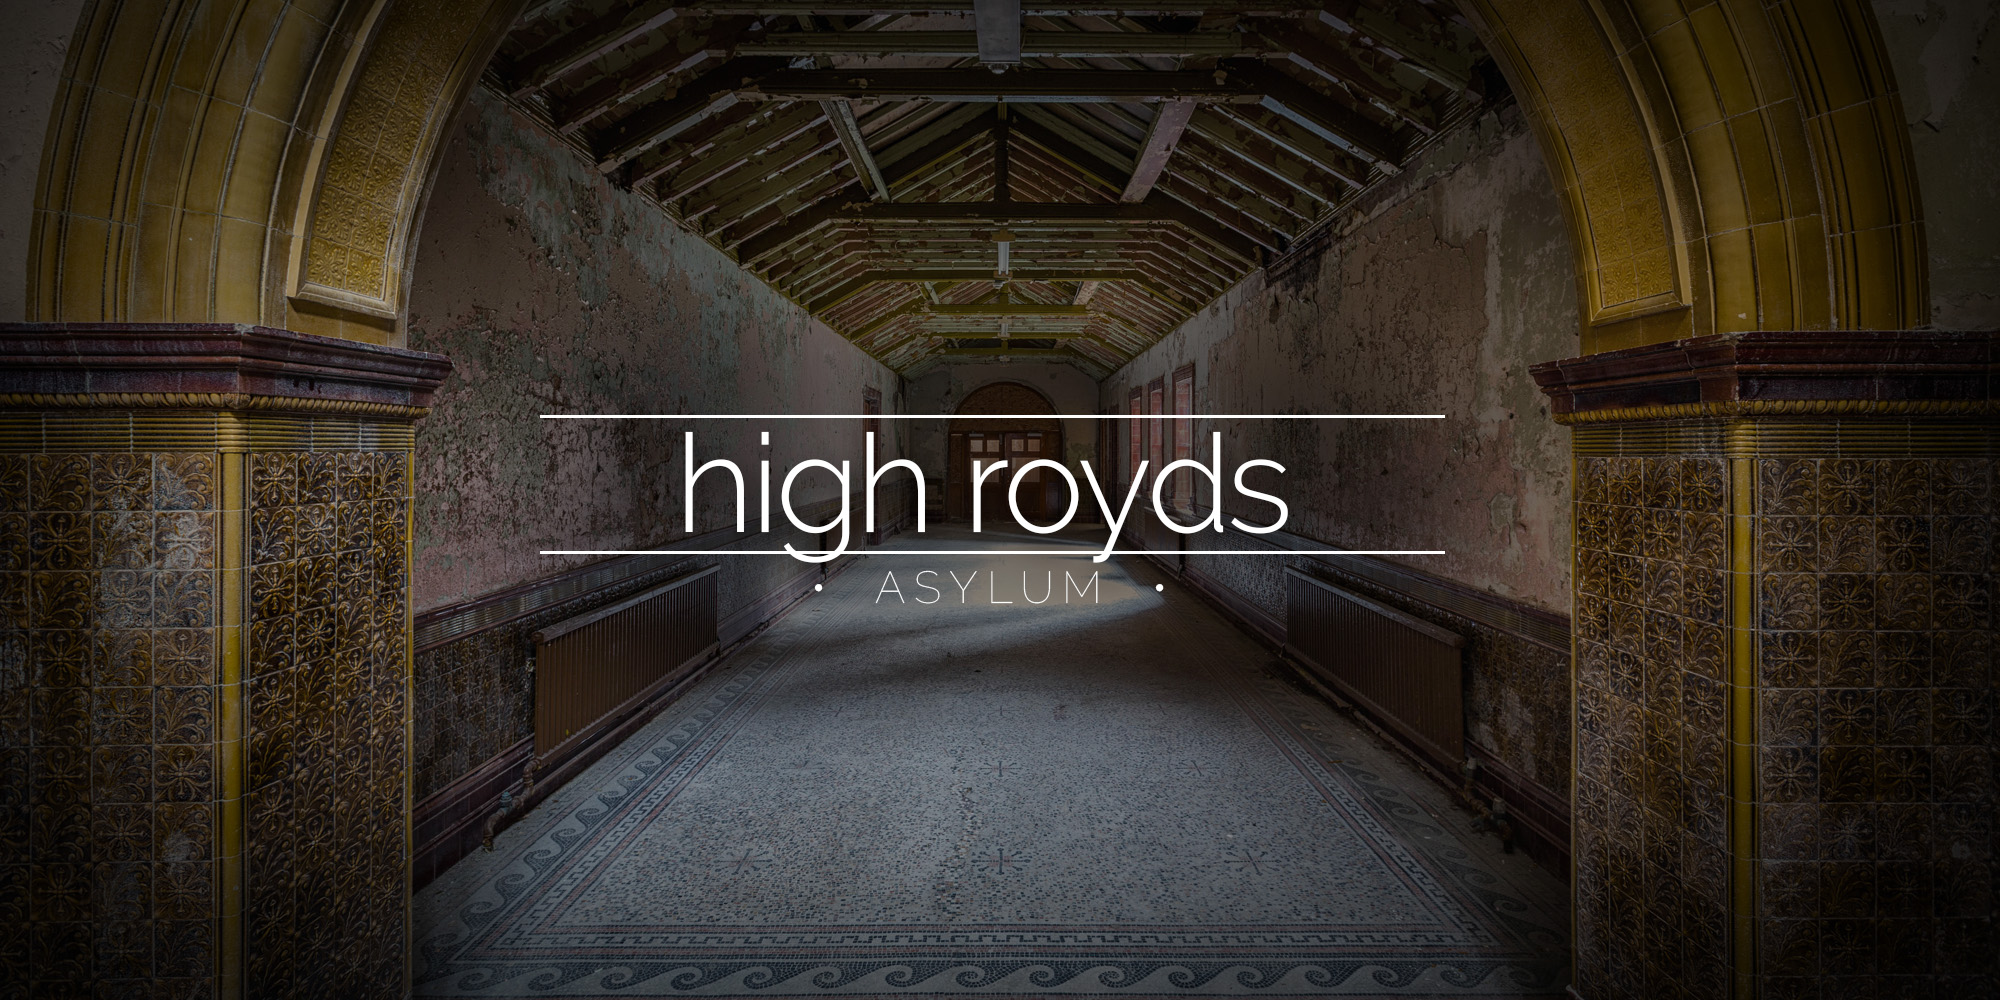 High Royds Asylum, Menston, Yorkshire, UK